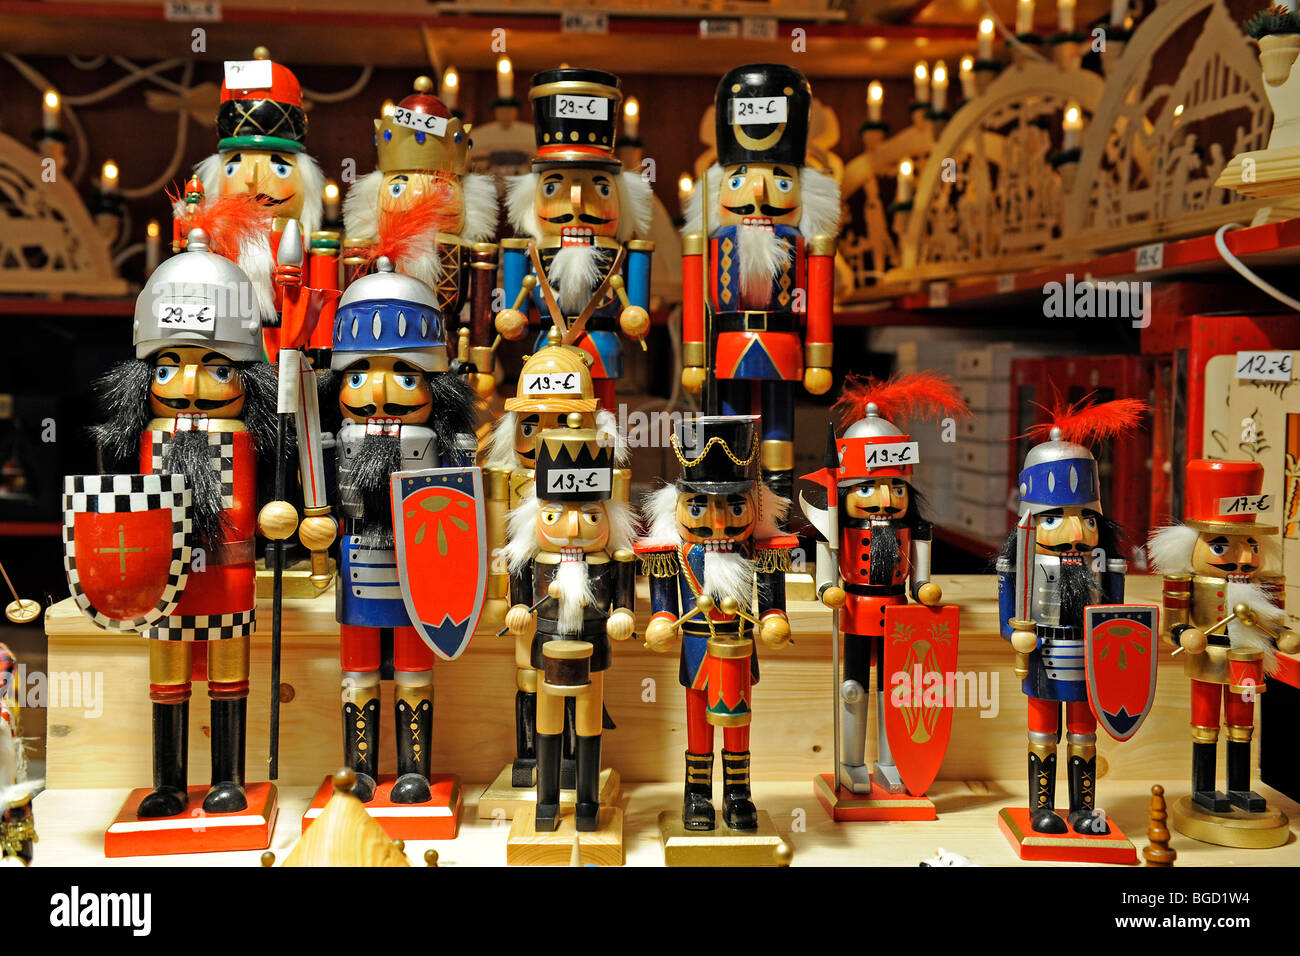 Nutcracker, wood craft on a Christmas market in Berlin, Germany, Europe - Stock Image